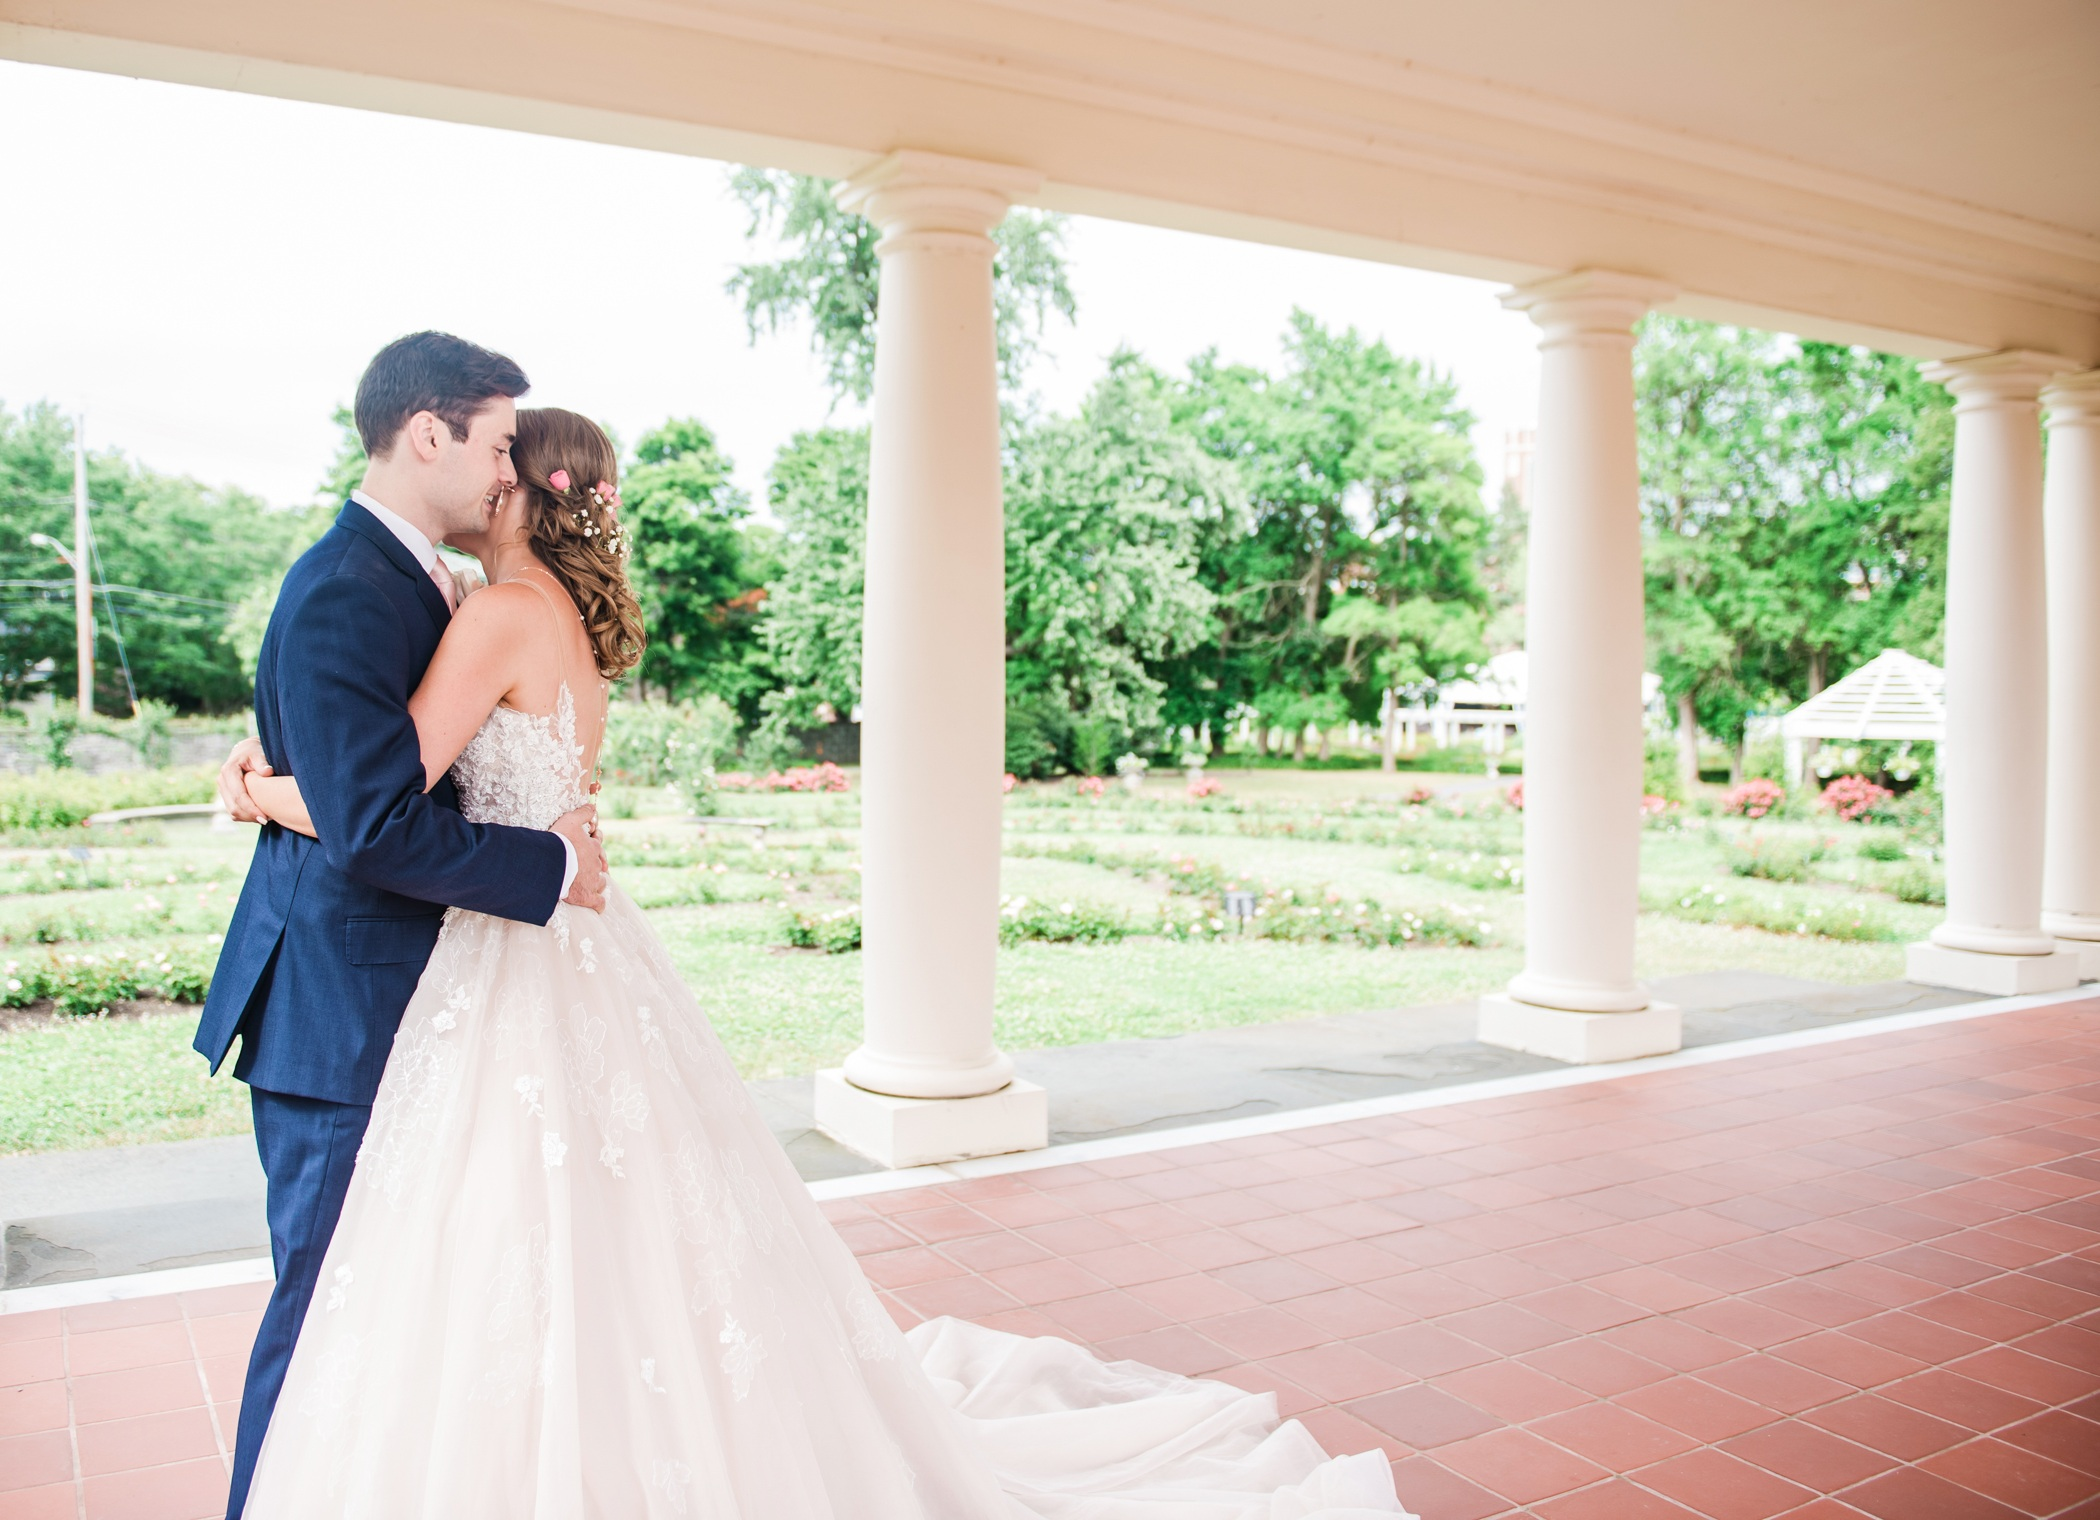 Choose what is best for YOU! - First look or no first look, it's your wedding day so do what is best for your big day!